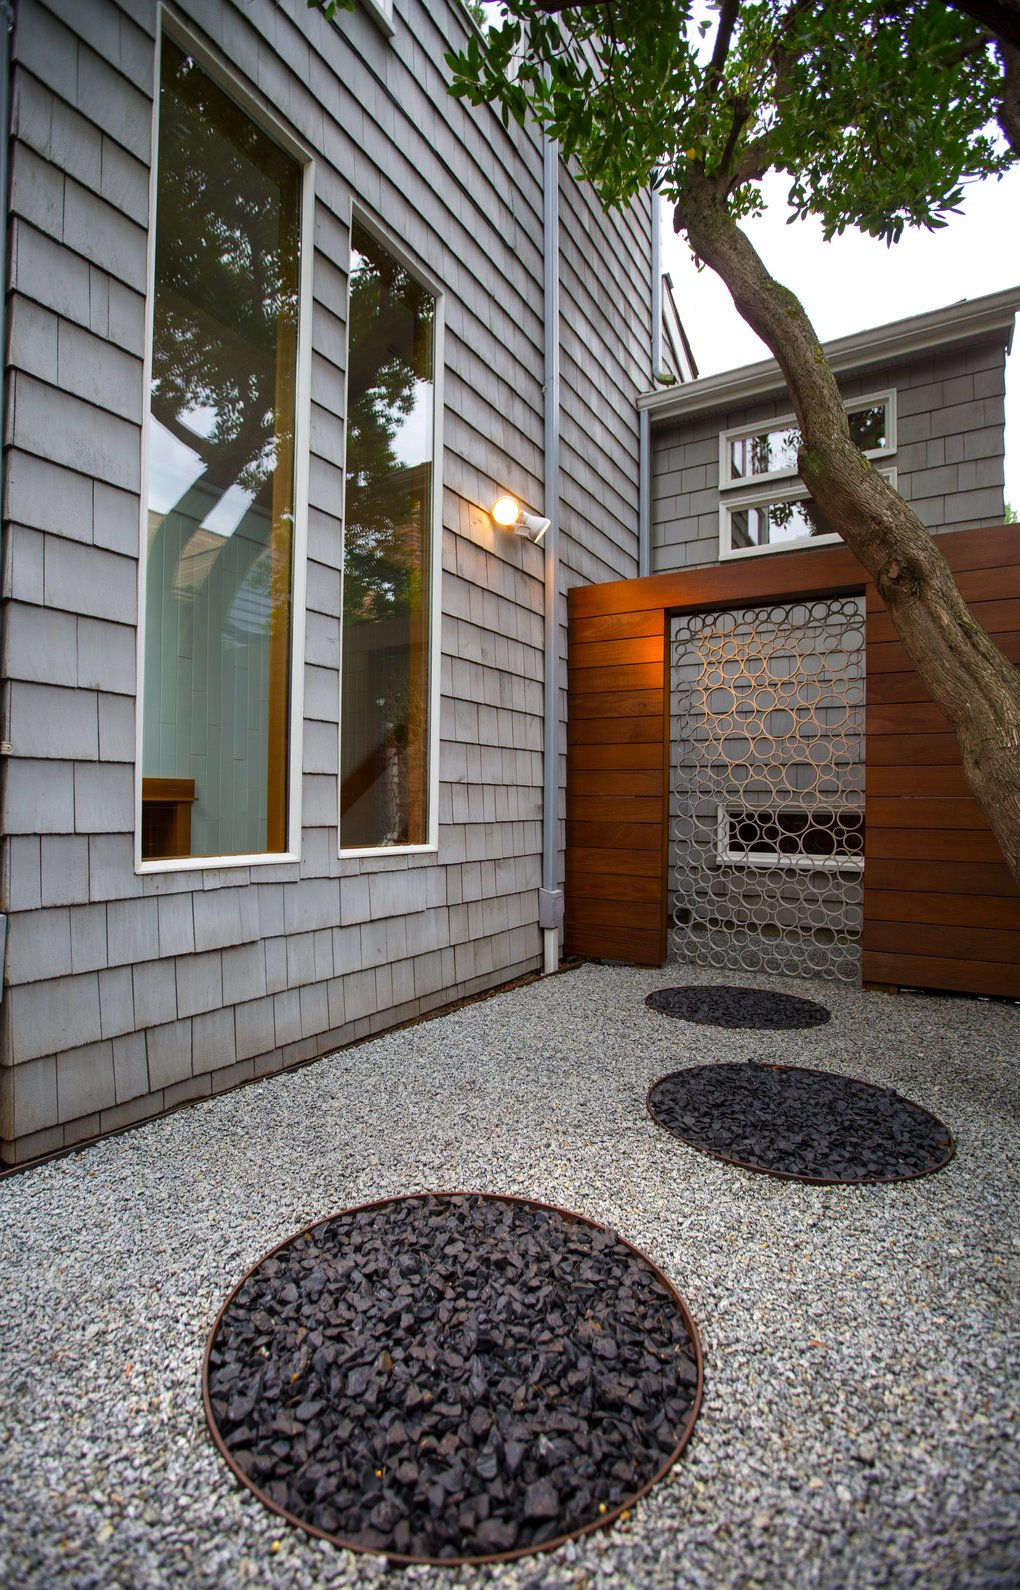 An aluminum gate repeats the circle motif in the side garden, where a simple composition of two tones of gravel, siding, fence and tree adds up to a quiet yet dramatic Zen garden. (Mike Siegel/The Seattle Times)